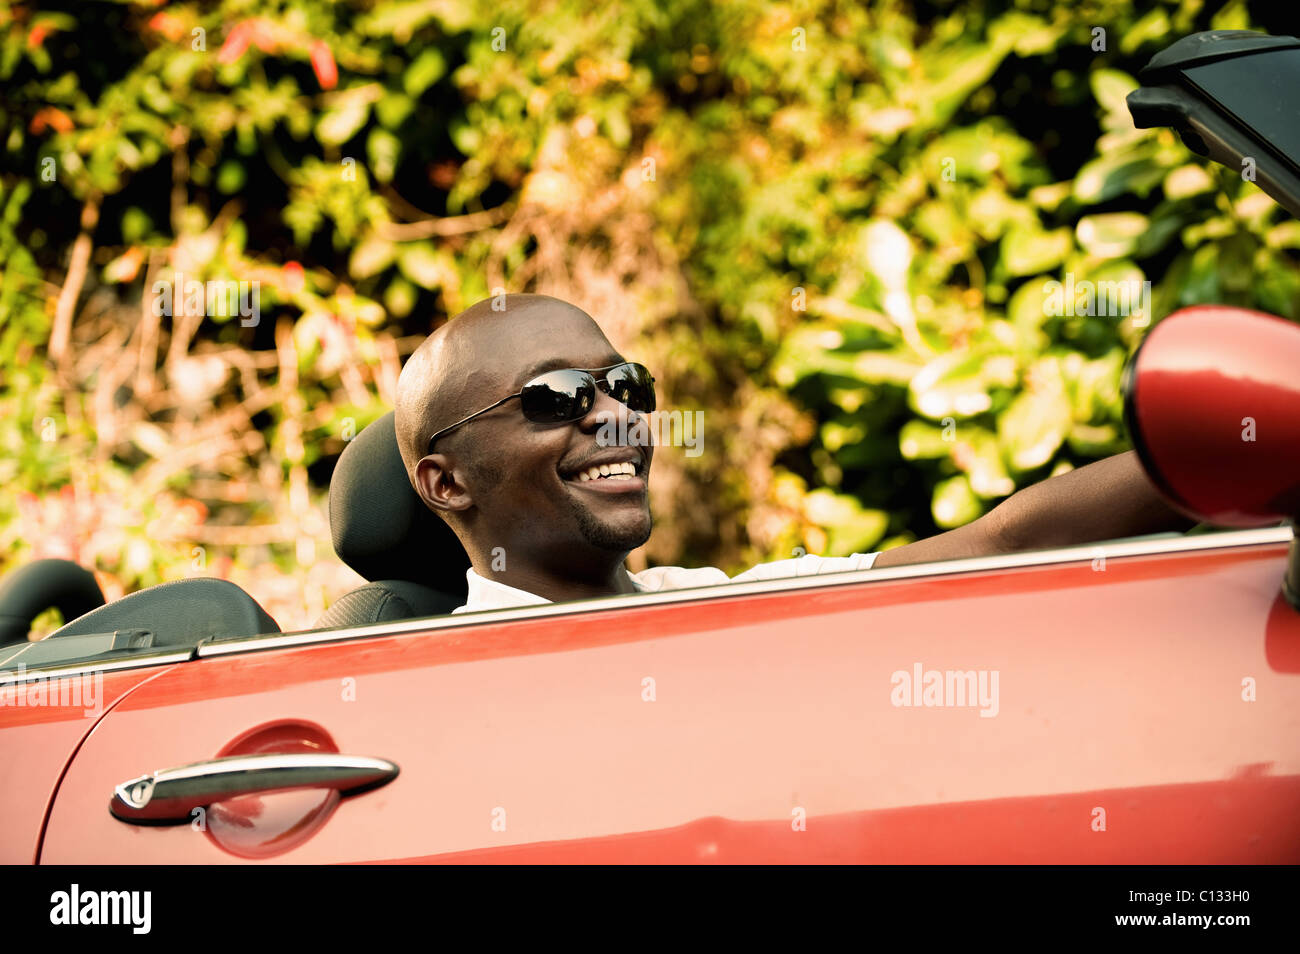 Young man smiling as he drives convertible car. Johannesburg, South Africa - Stock Image